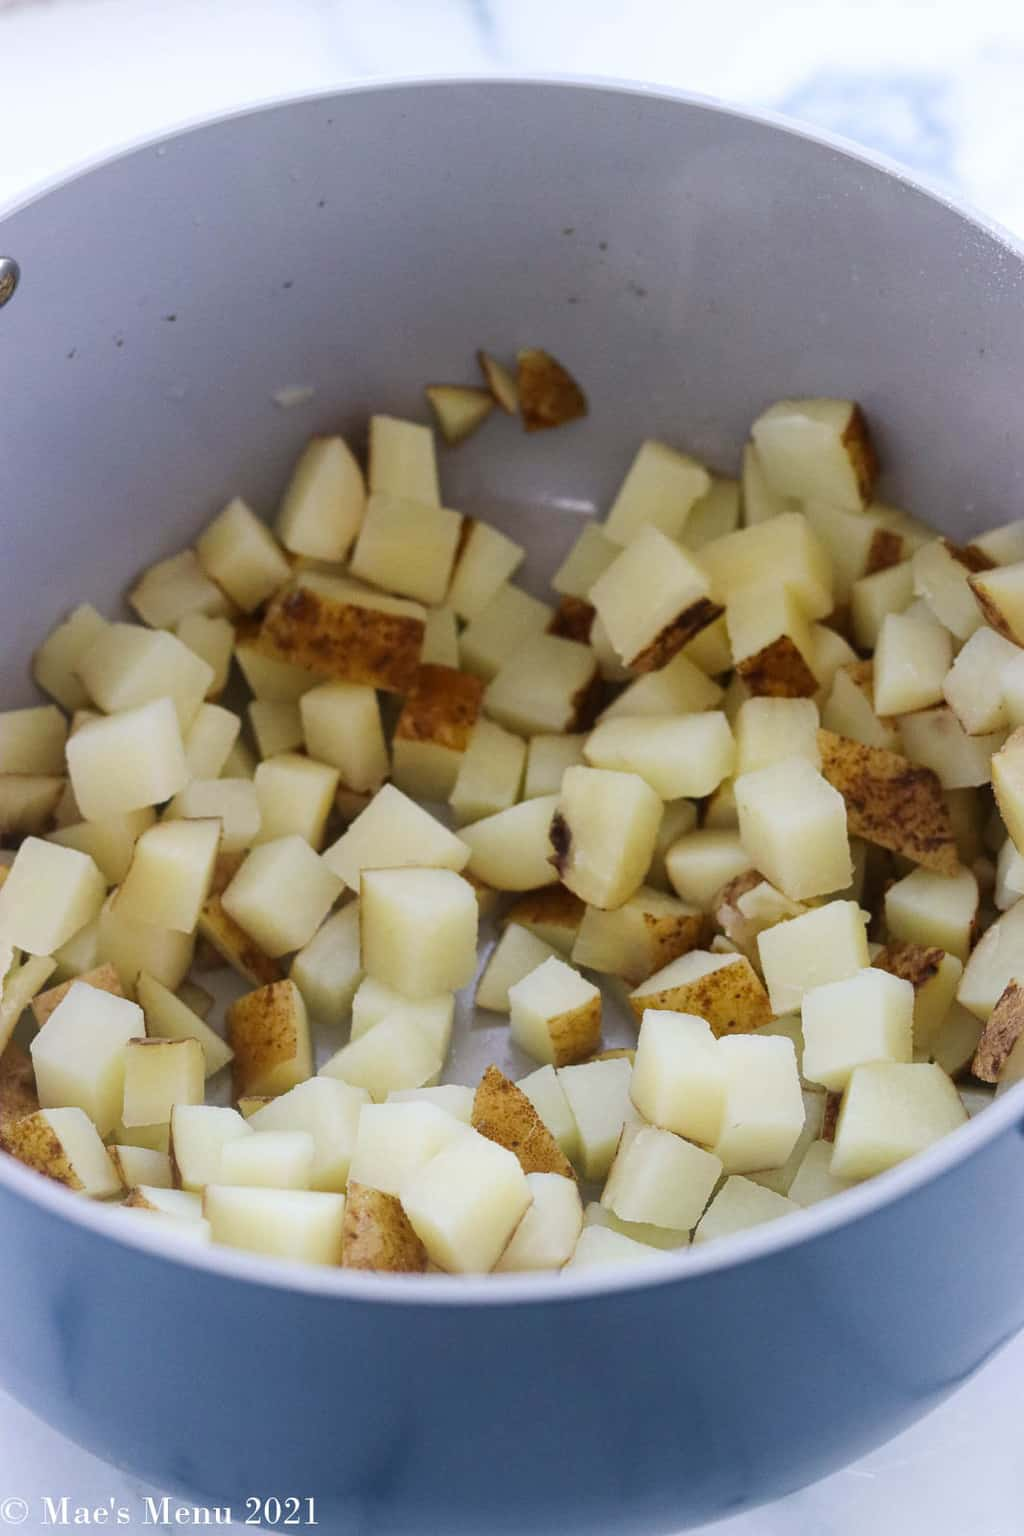 Simmered and drained potatoes in a stockpot